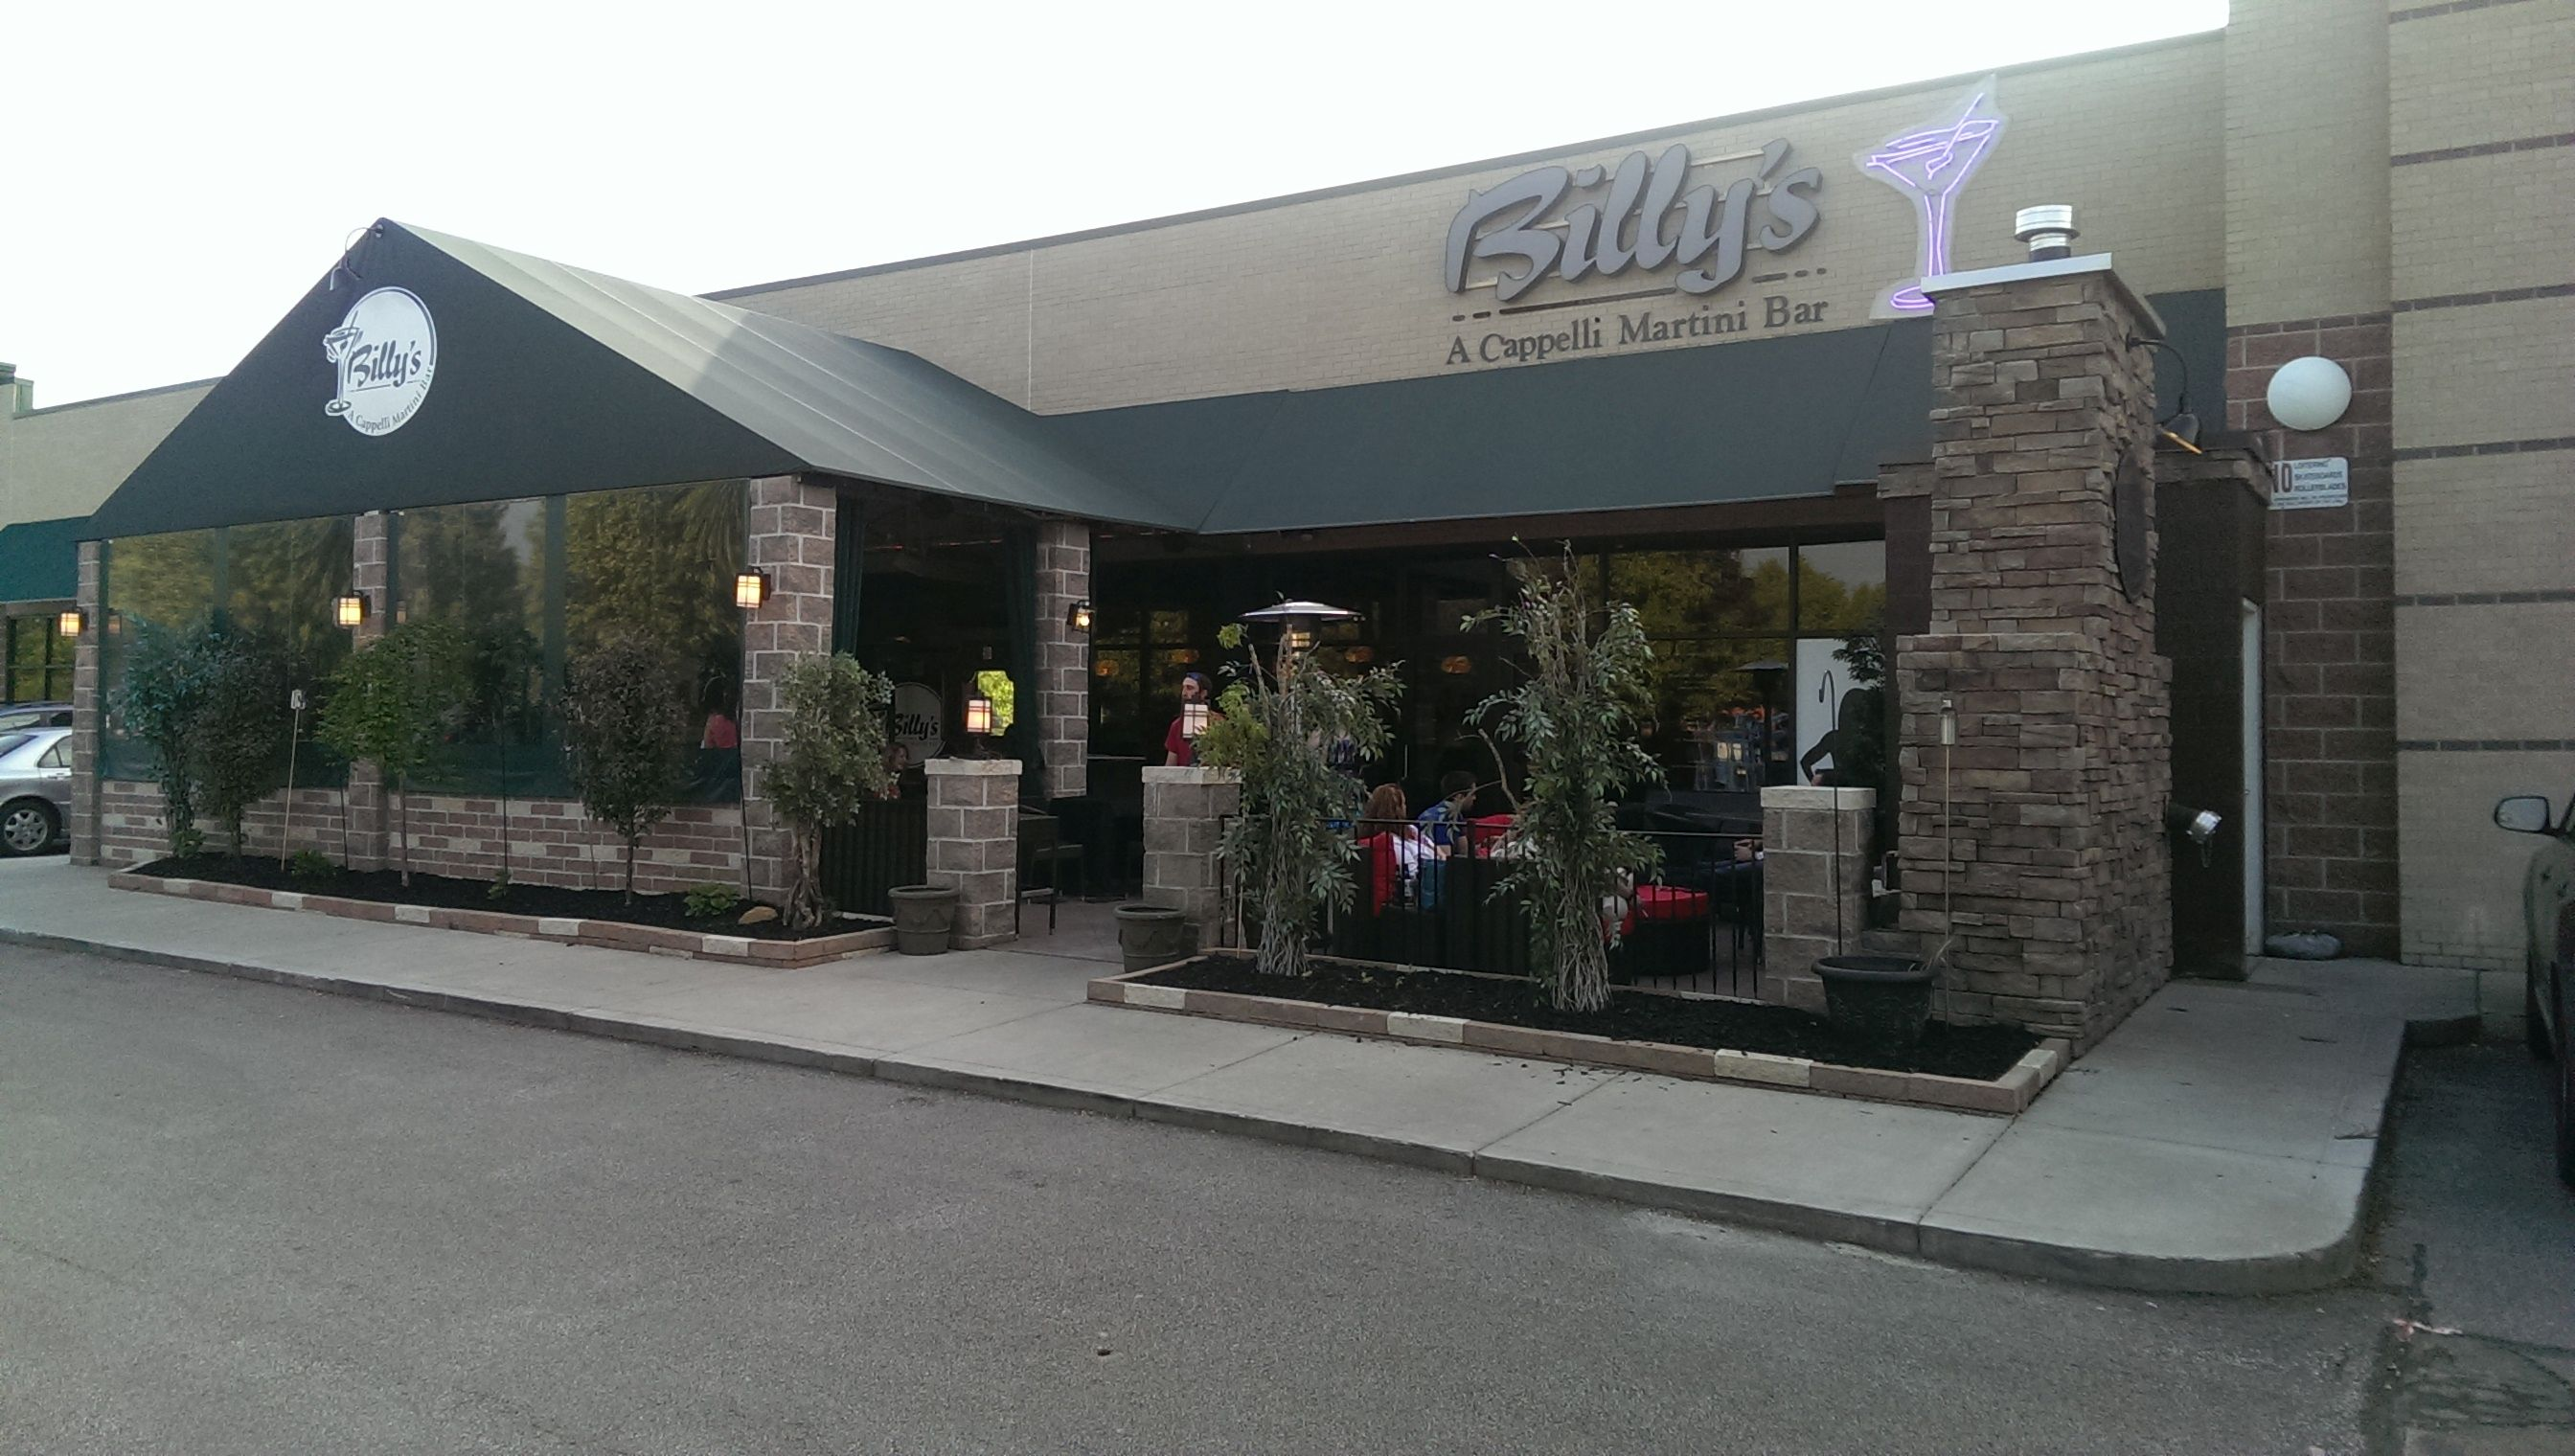 Billy's - A Cappelli Martini Bar image 0